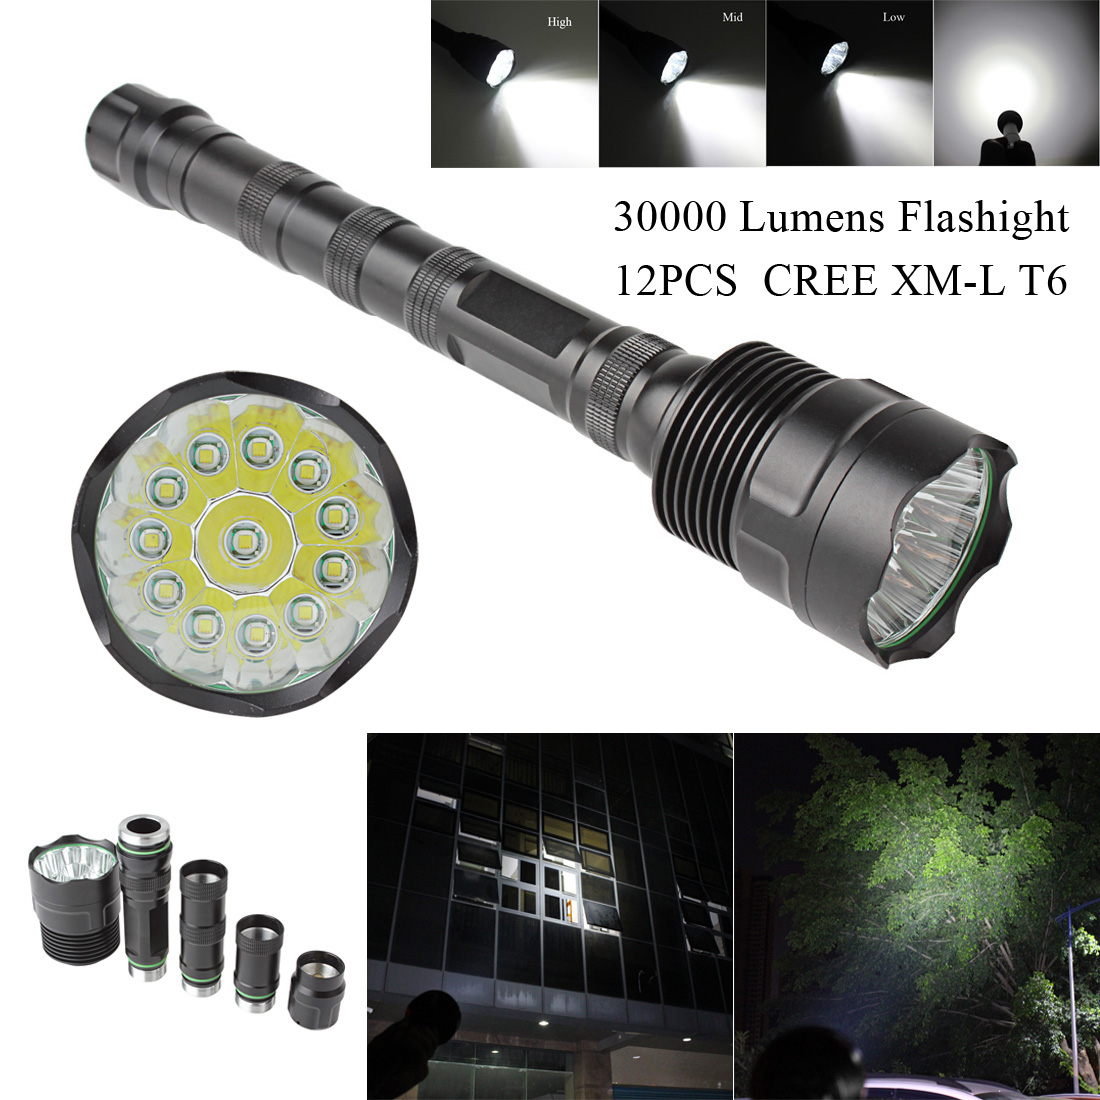 LED Flashlight 30000 Lumens Torch Lamp 5 Modes 8-12 CREE XM-L LED T6 Light for Homehold&Outdoor Camping Lantern Hunting 3800 lumens xm l t6 5 modes led tactical flashlight torch waterproof lamp torch hunting flash light lantern for camping